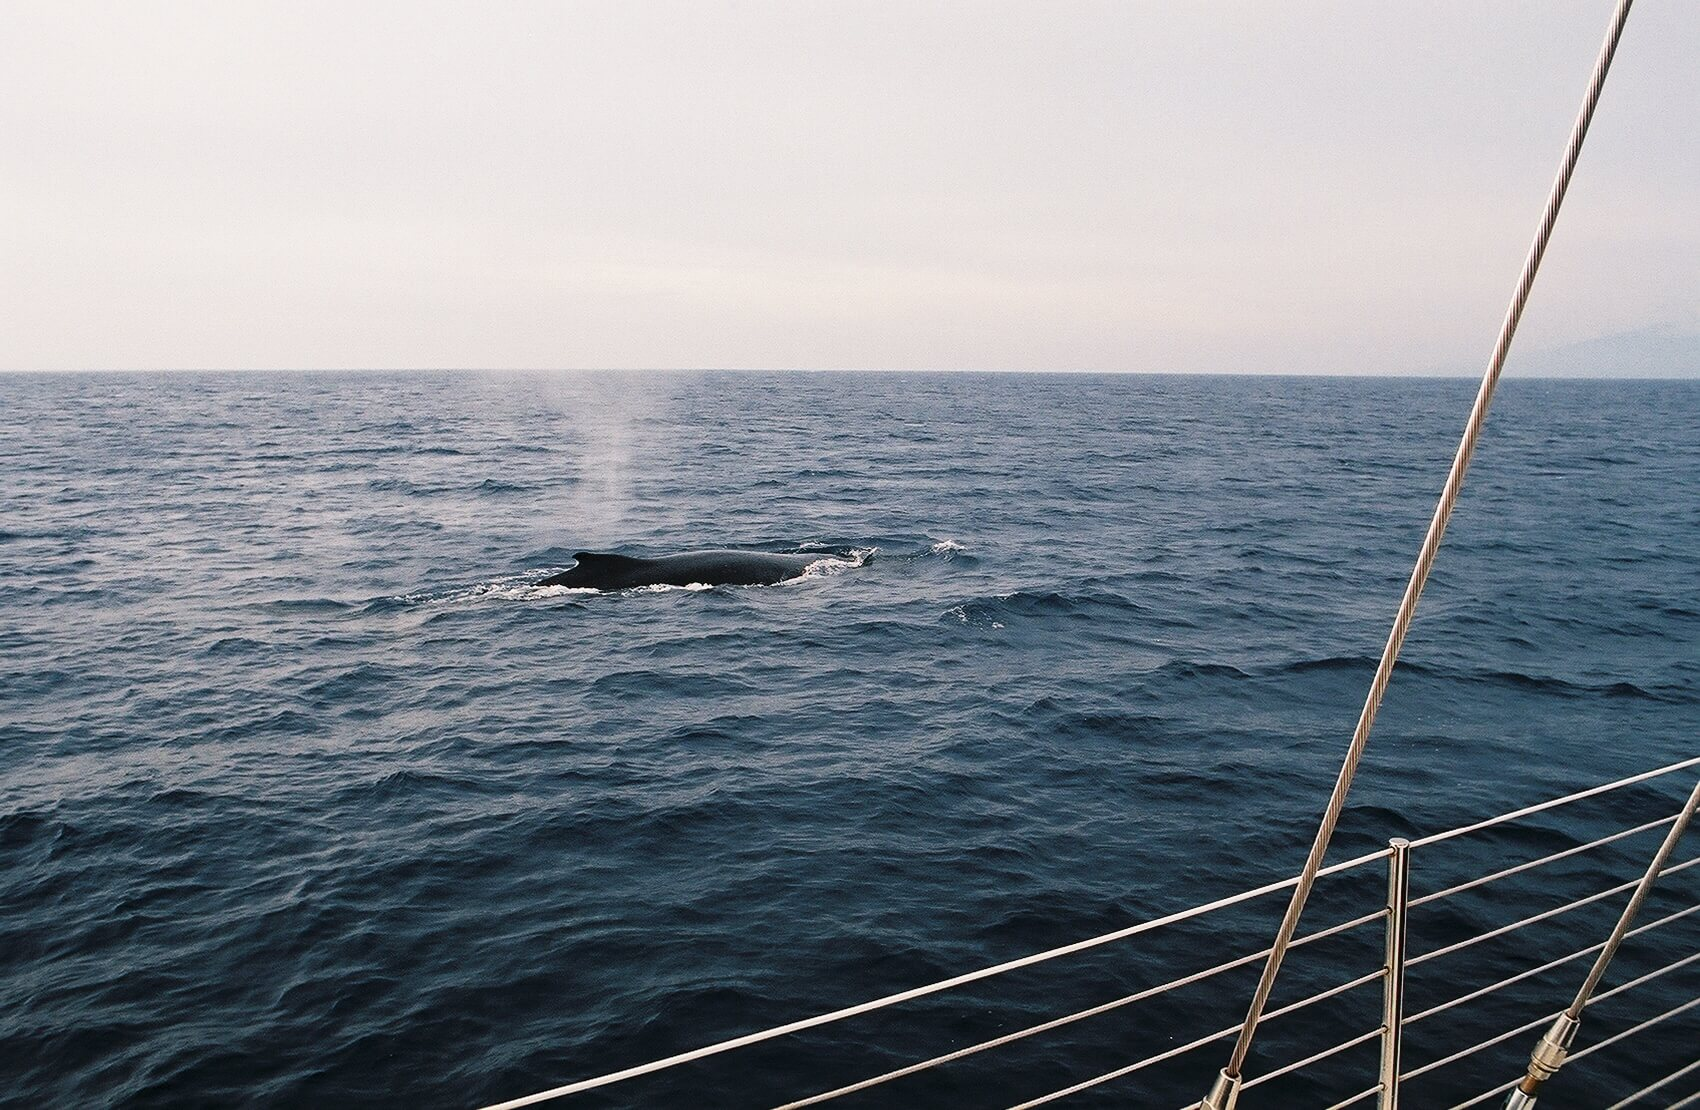 Gemini Whale Watching Tour in Maui shot by Ryan Hines